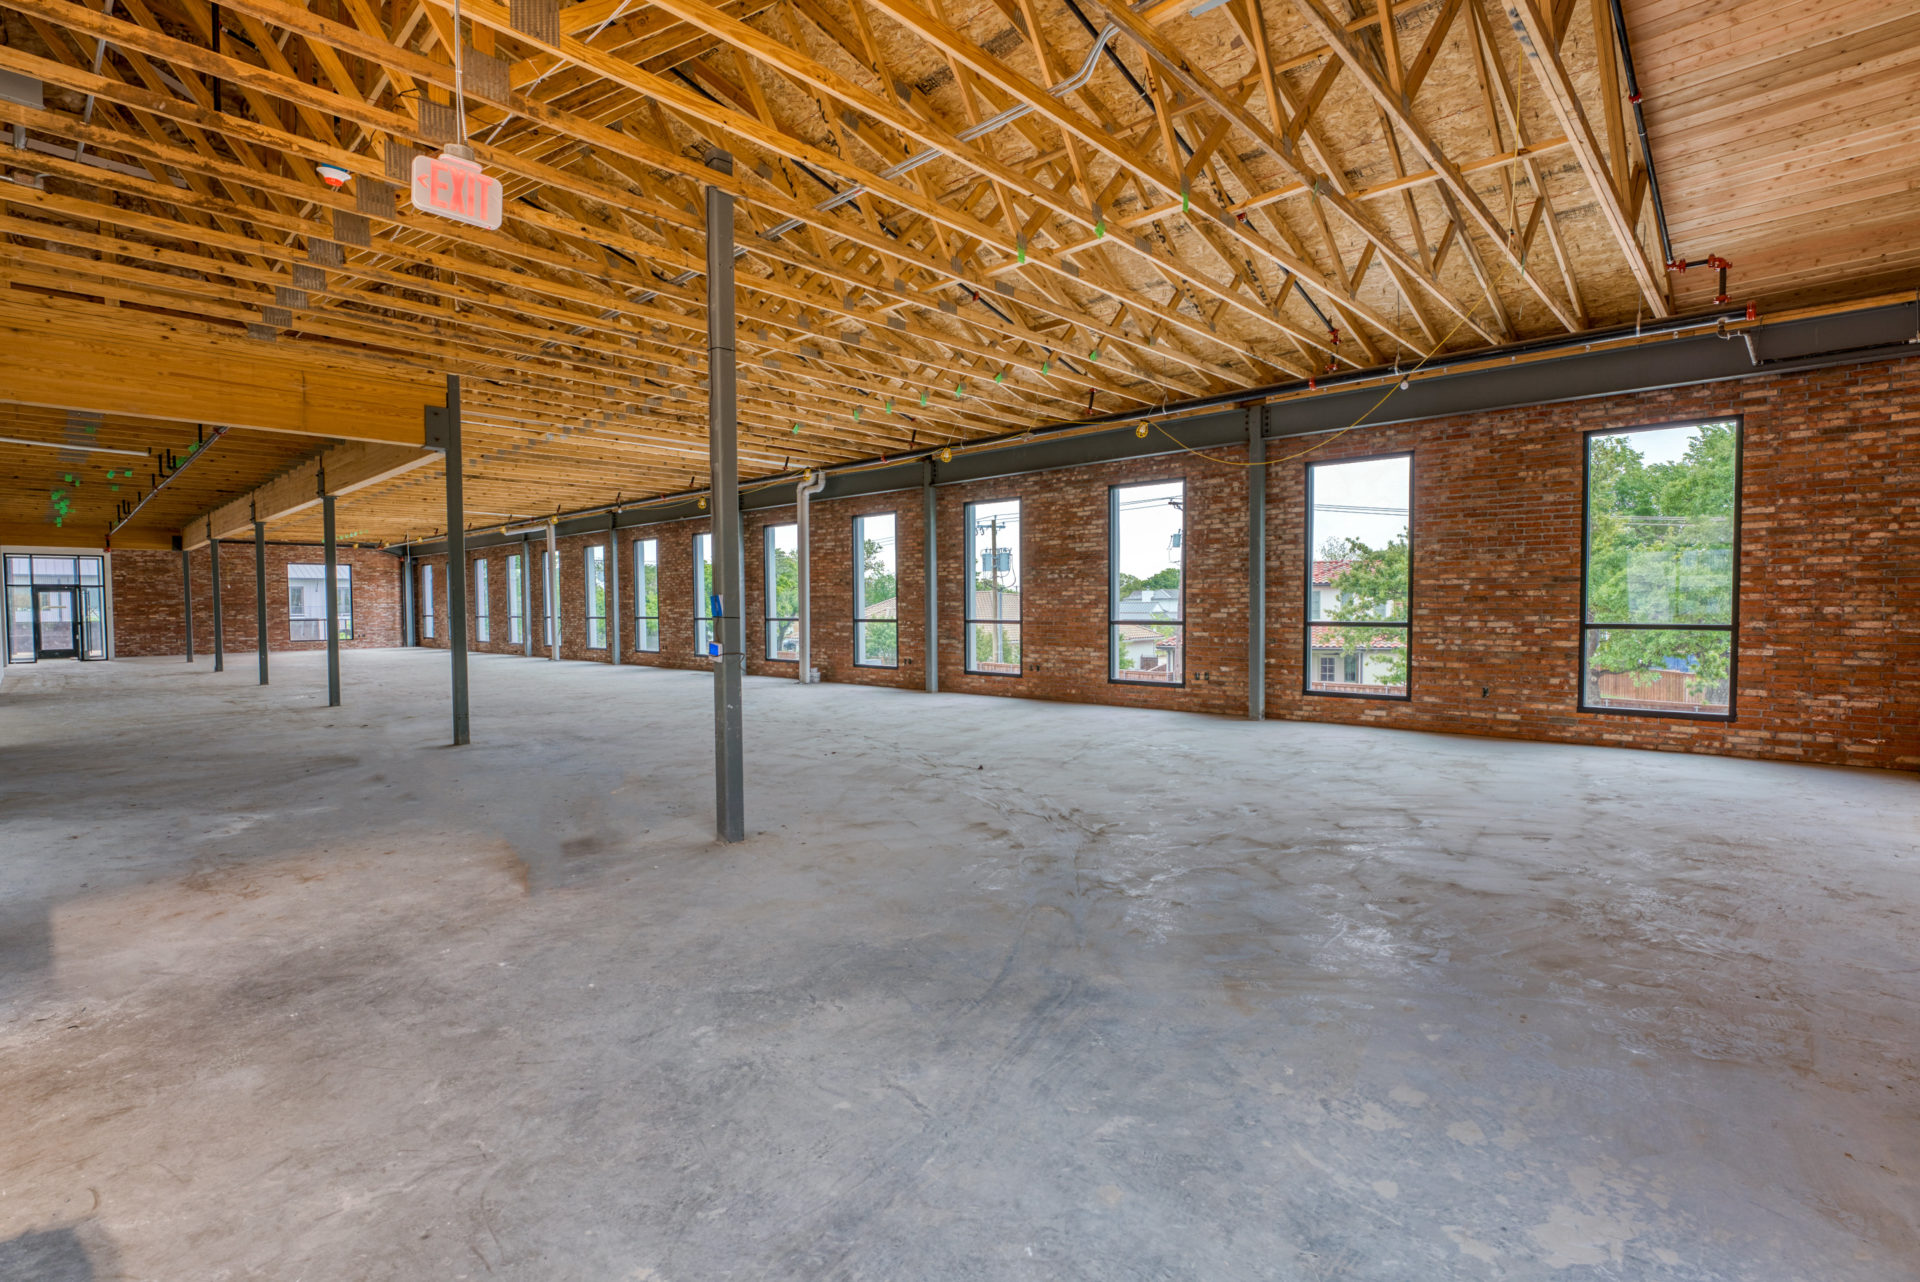 Interior view of the ground floor of 133 Nursery Lane with unfinished ceilings and a brick wall on the right side